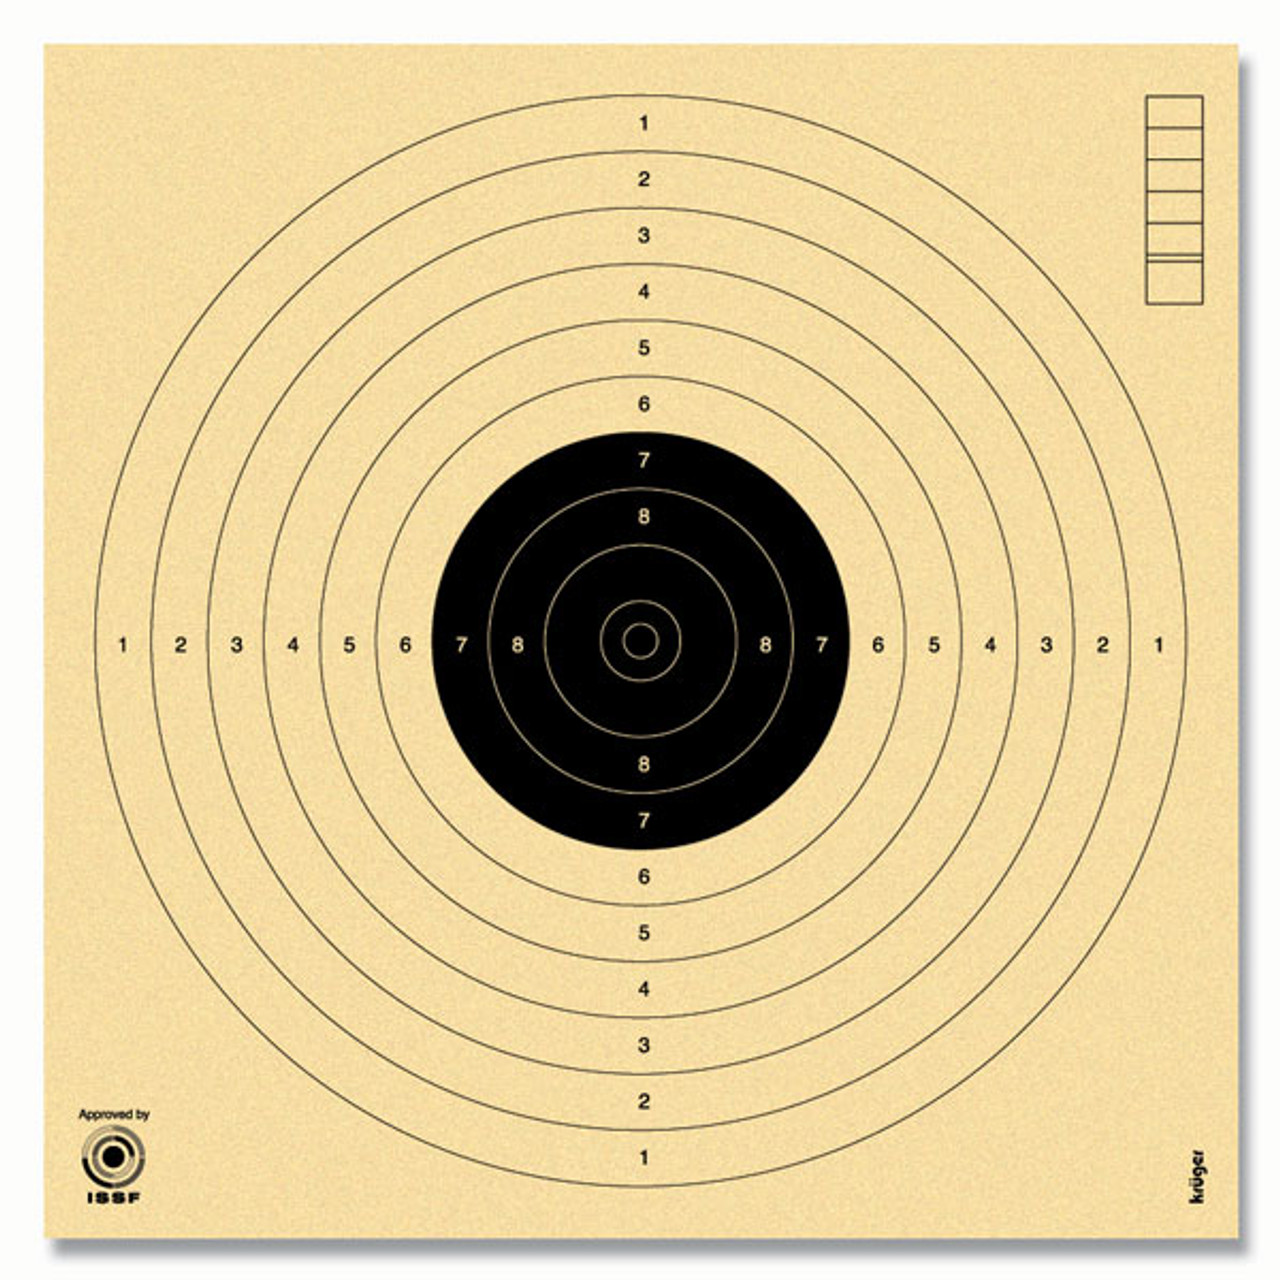 Top Five Issf 10m Air Pistol Targets - Circus